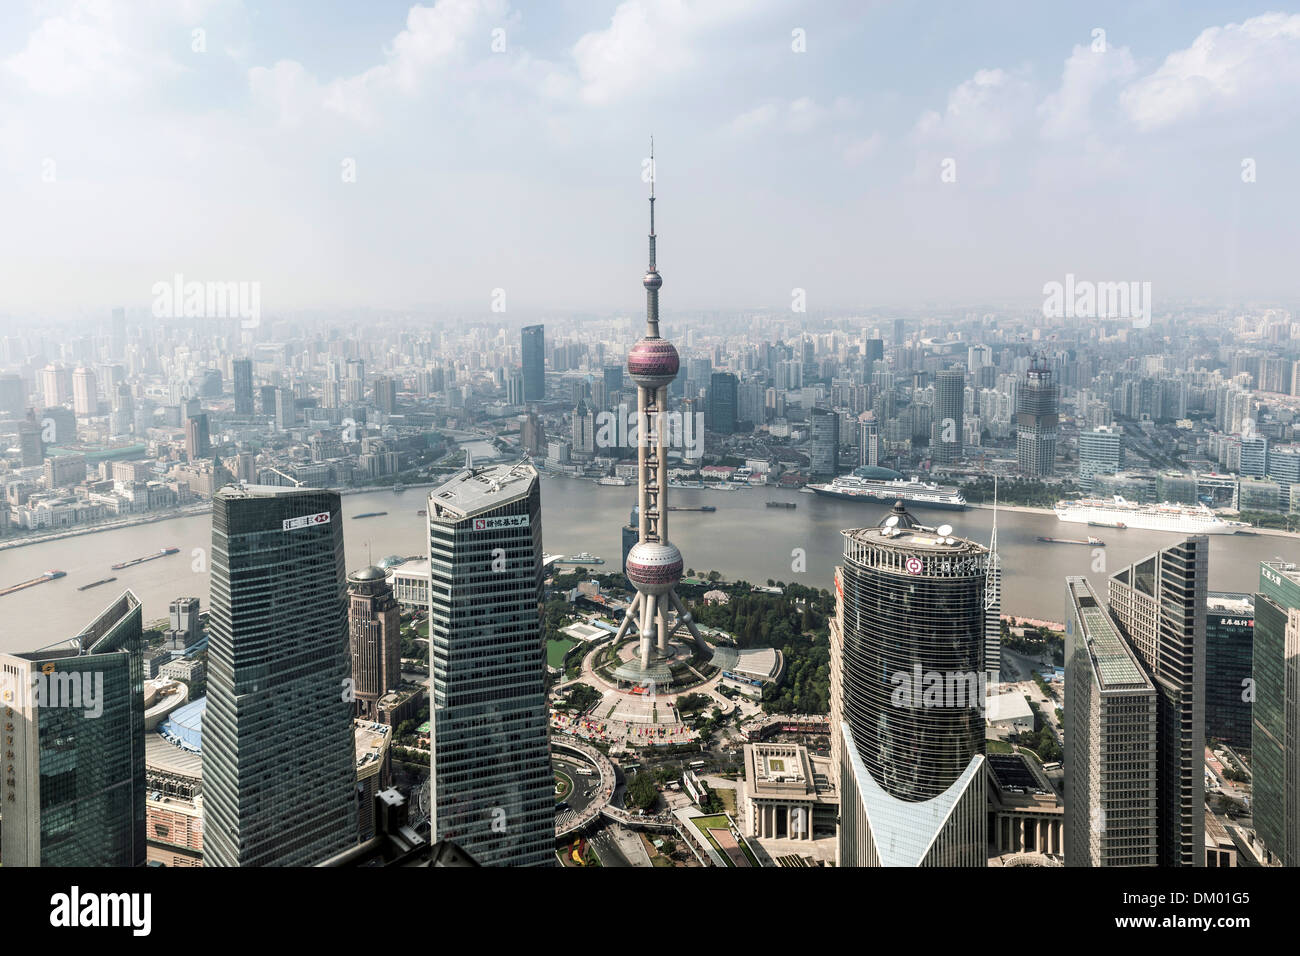 View of the Oriental Pearl Tower, Lujiazui financial district, Pudong, Shanghai, China - Stock Image